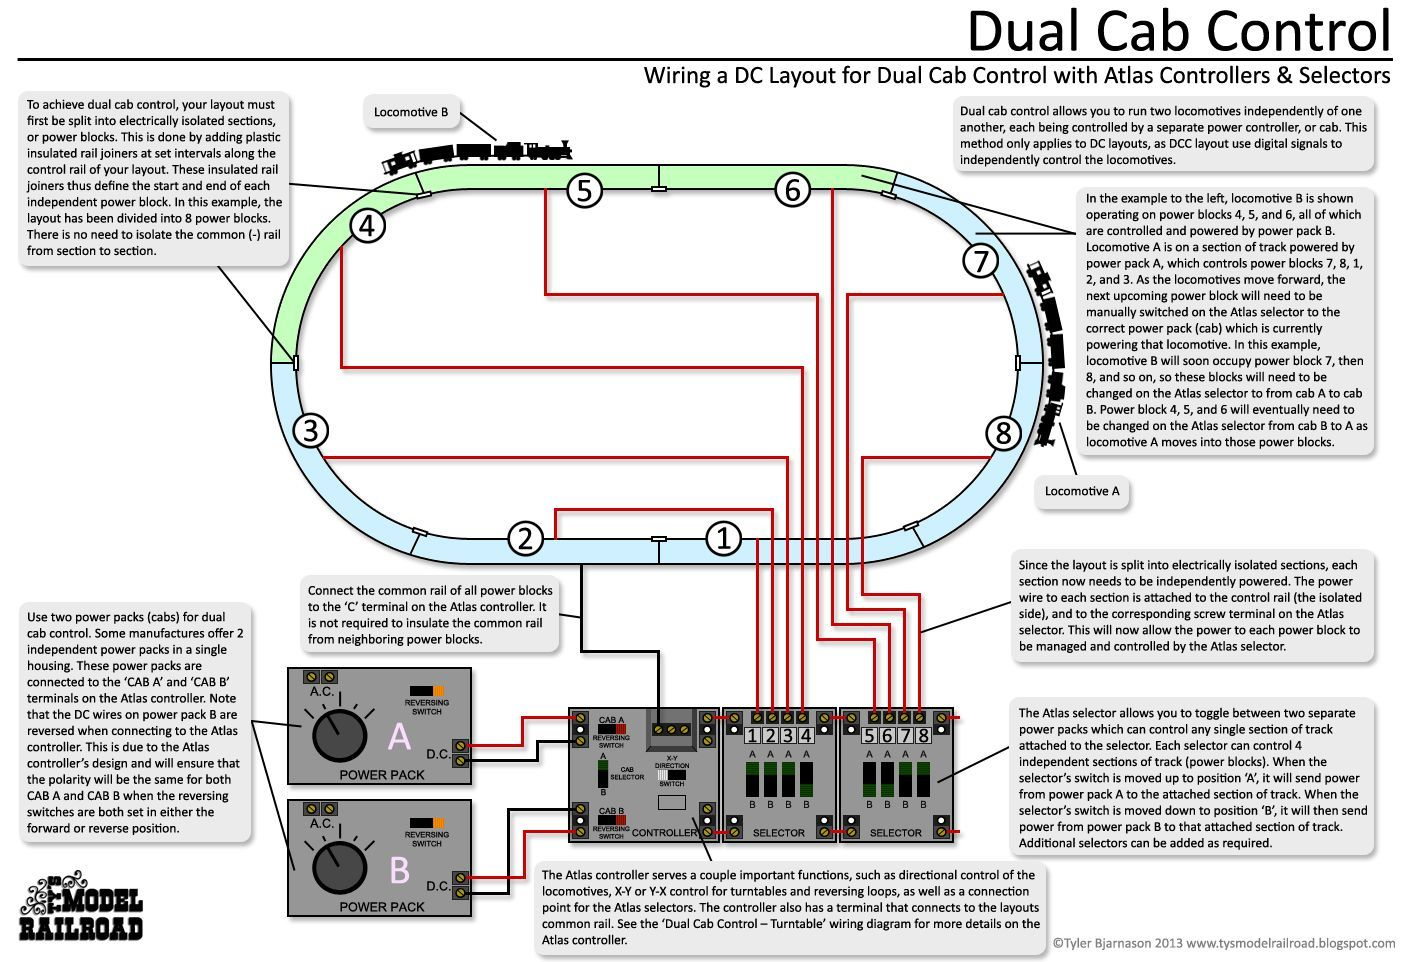 atlas model railroad wiring how to wire a layout for dual cab control using an [ 1409 x 962 Pixel ]